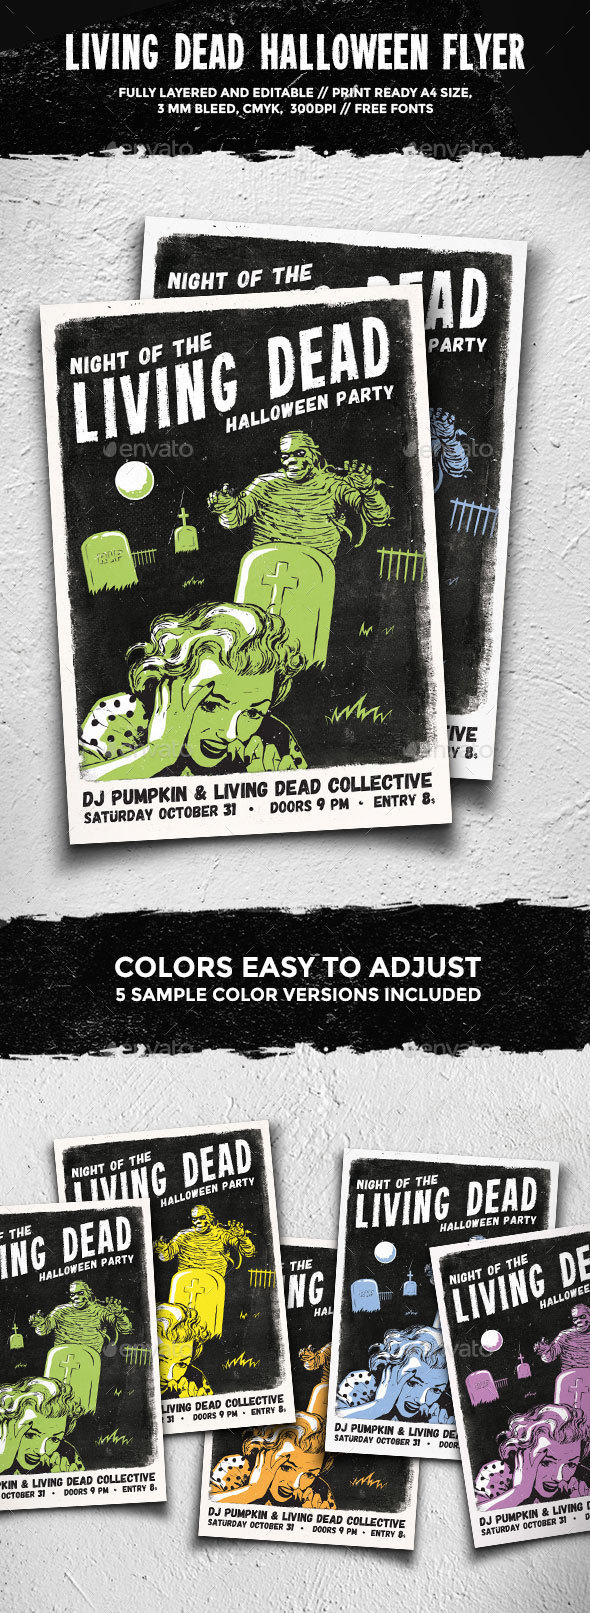 Living Dead Halloween Flyer